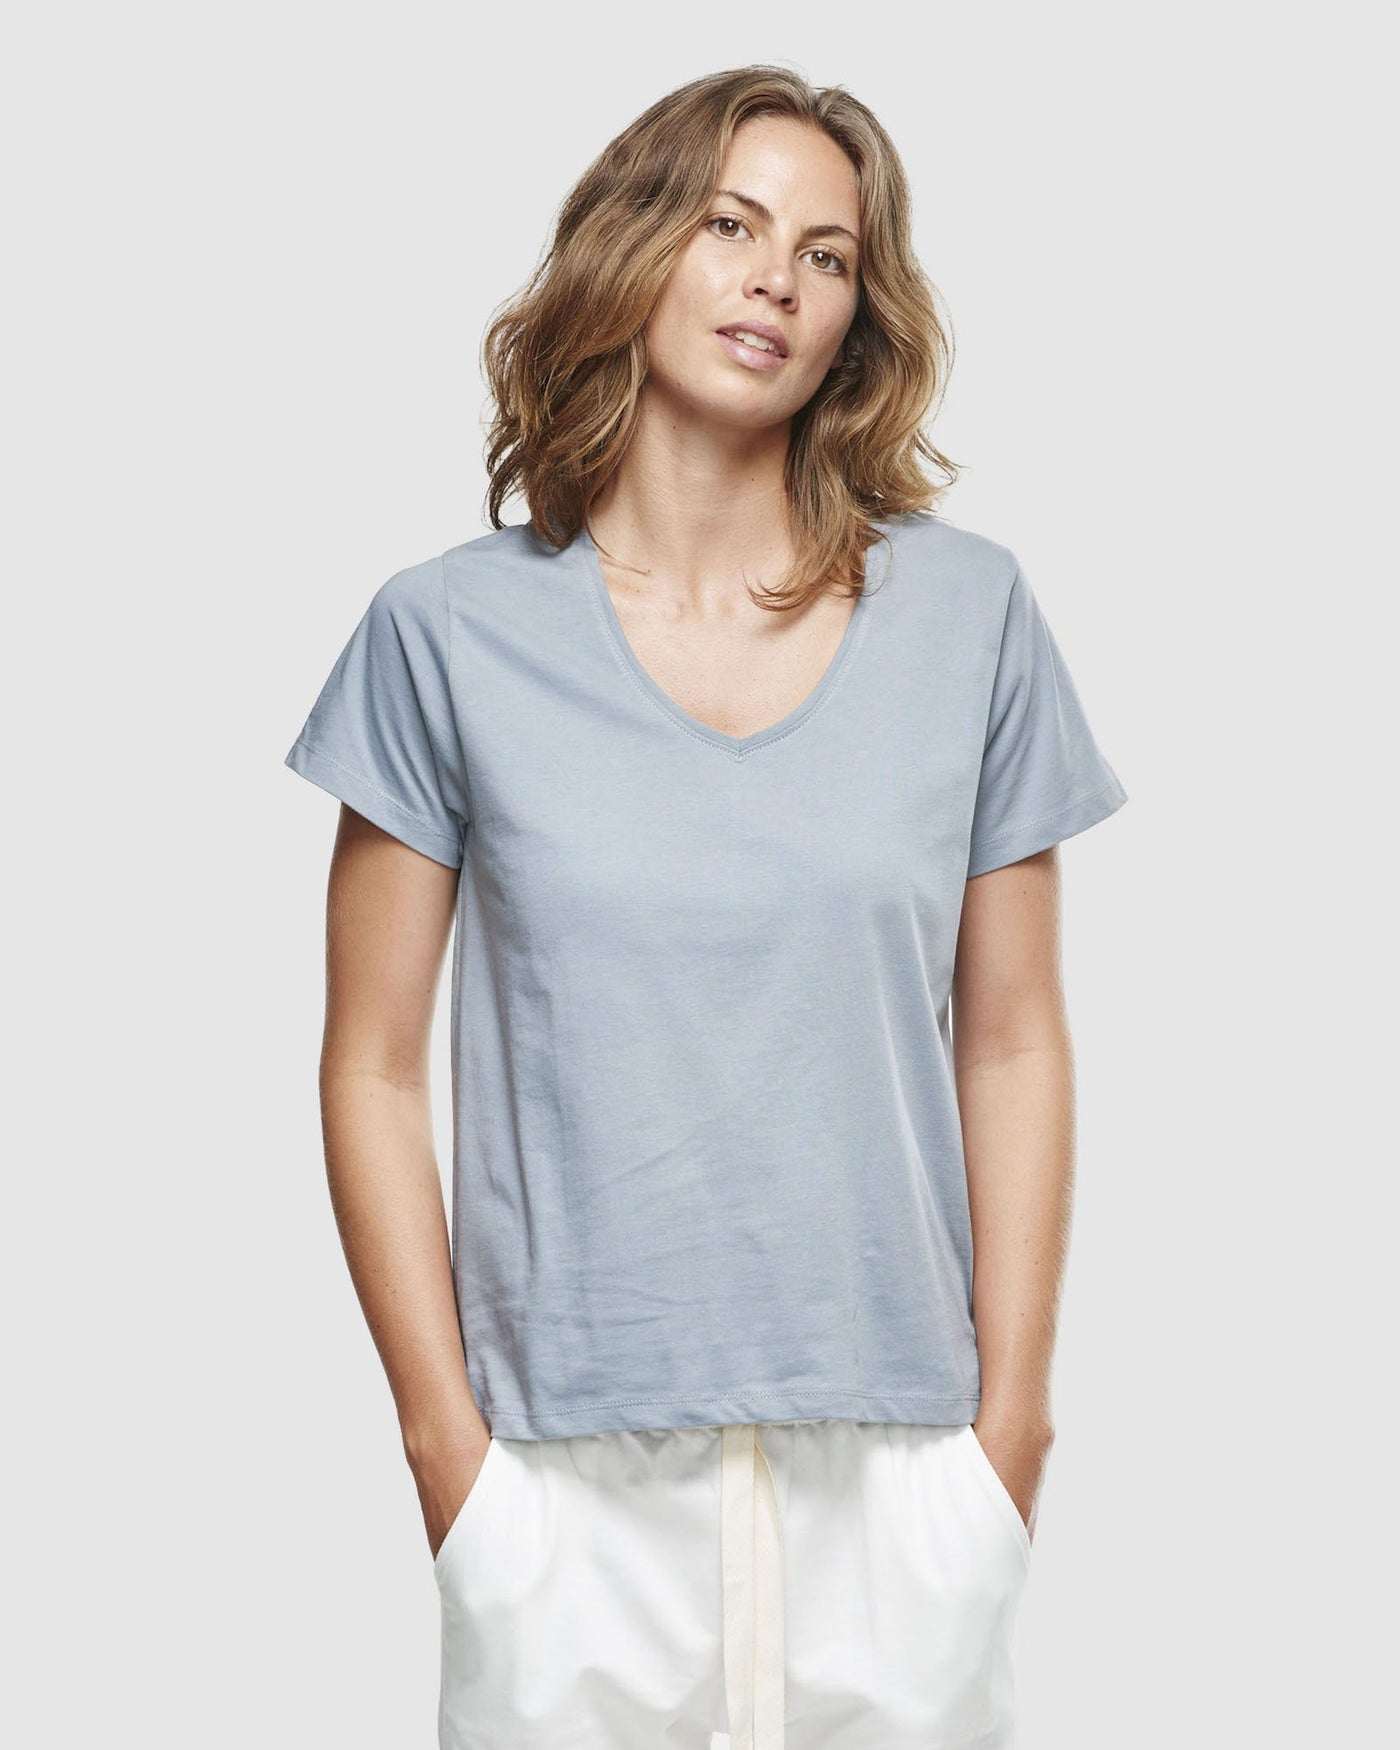 Classic V Neck Tee | Perriwinkle